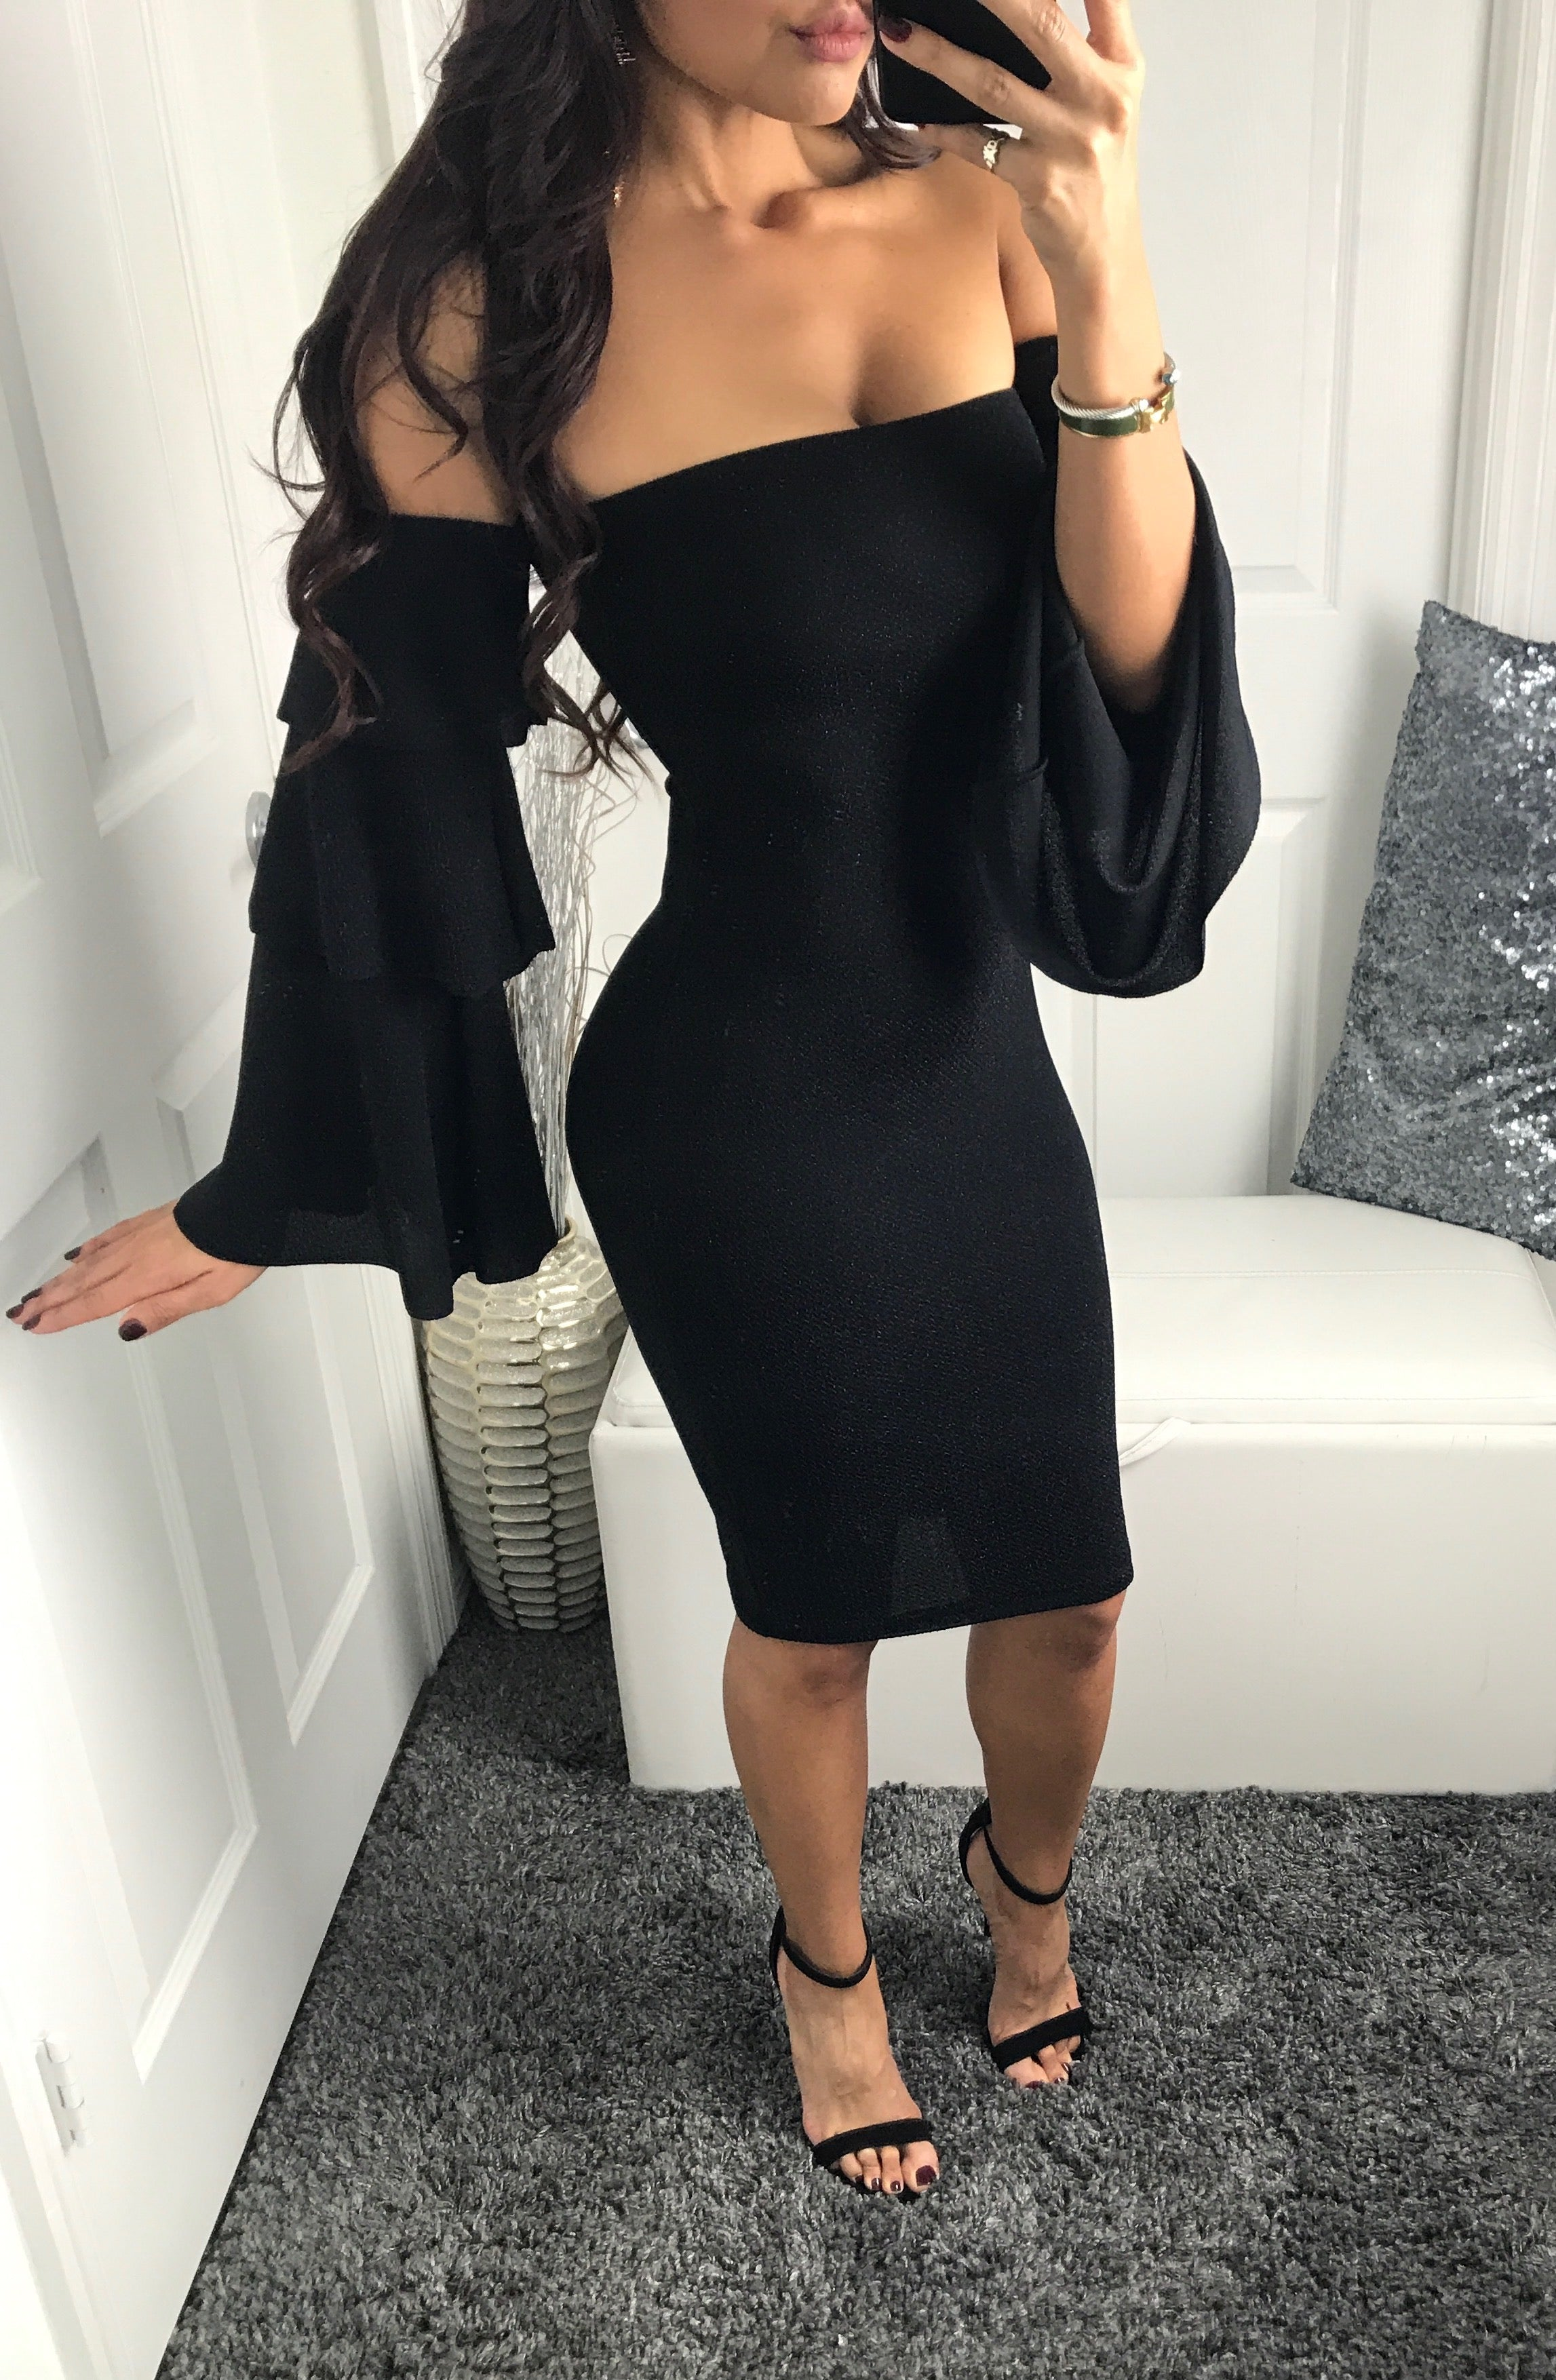 Jovanna Midi - Black Dress Ruffled Arms - by Halos Boutique